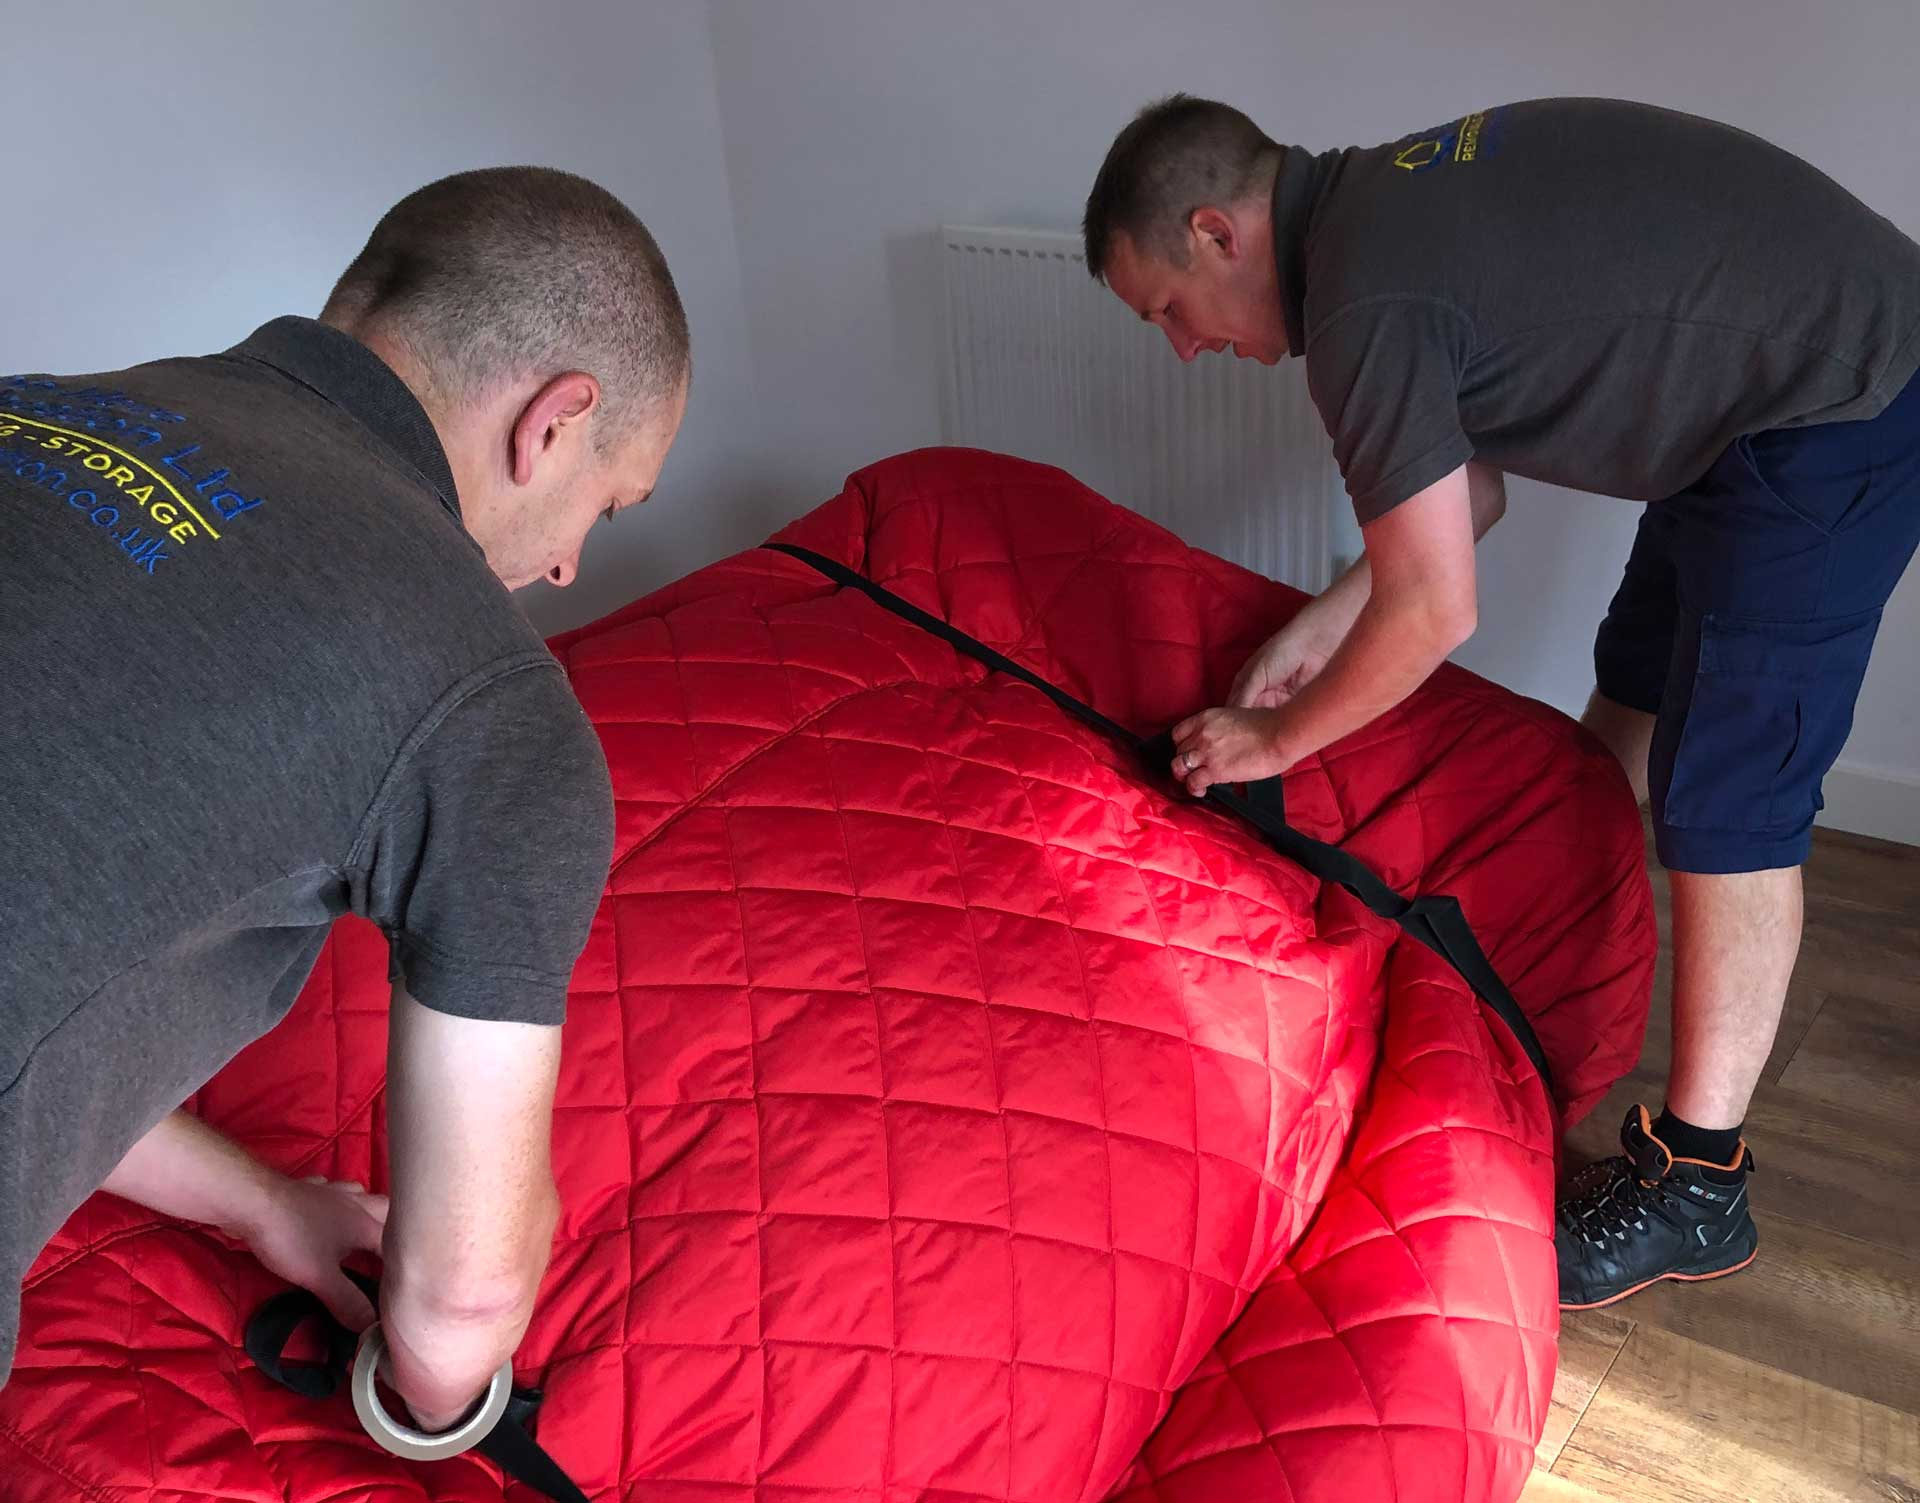 Nick and teammate carefully pad-wrapping a sofa